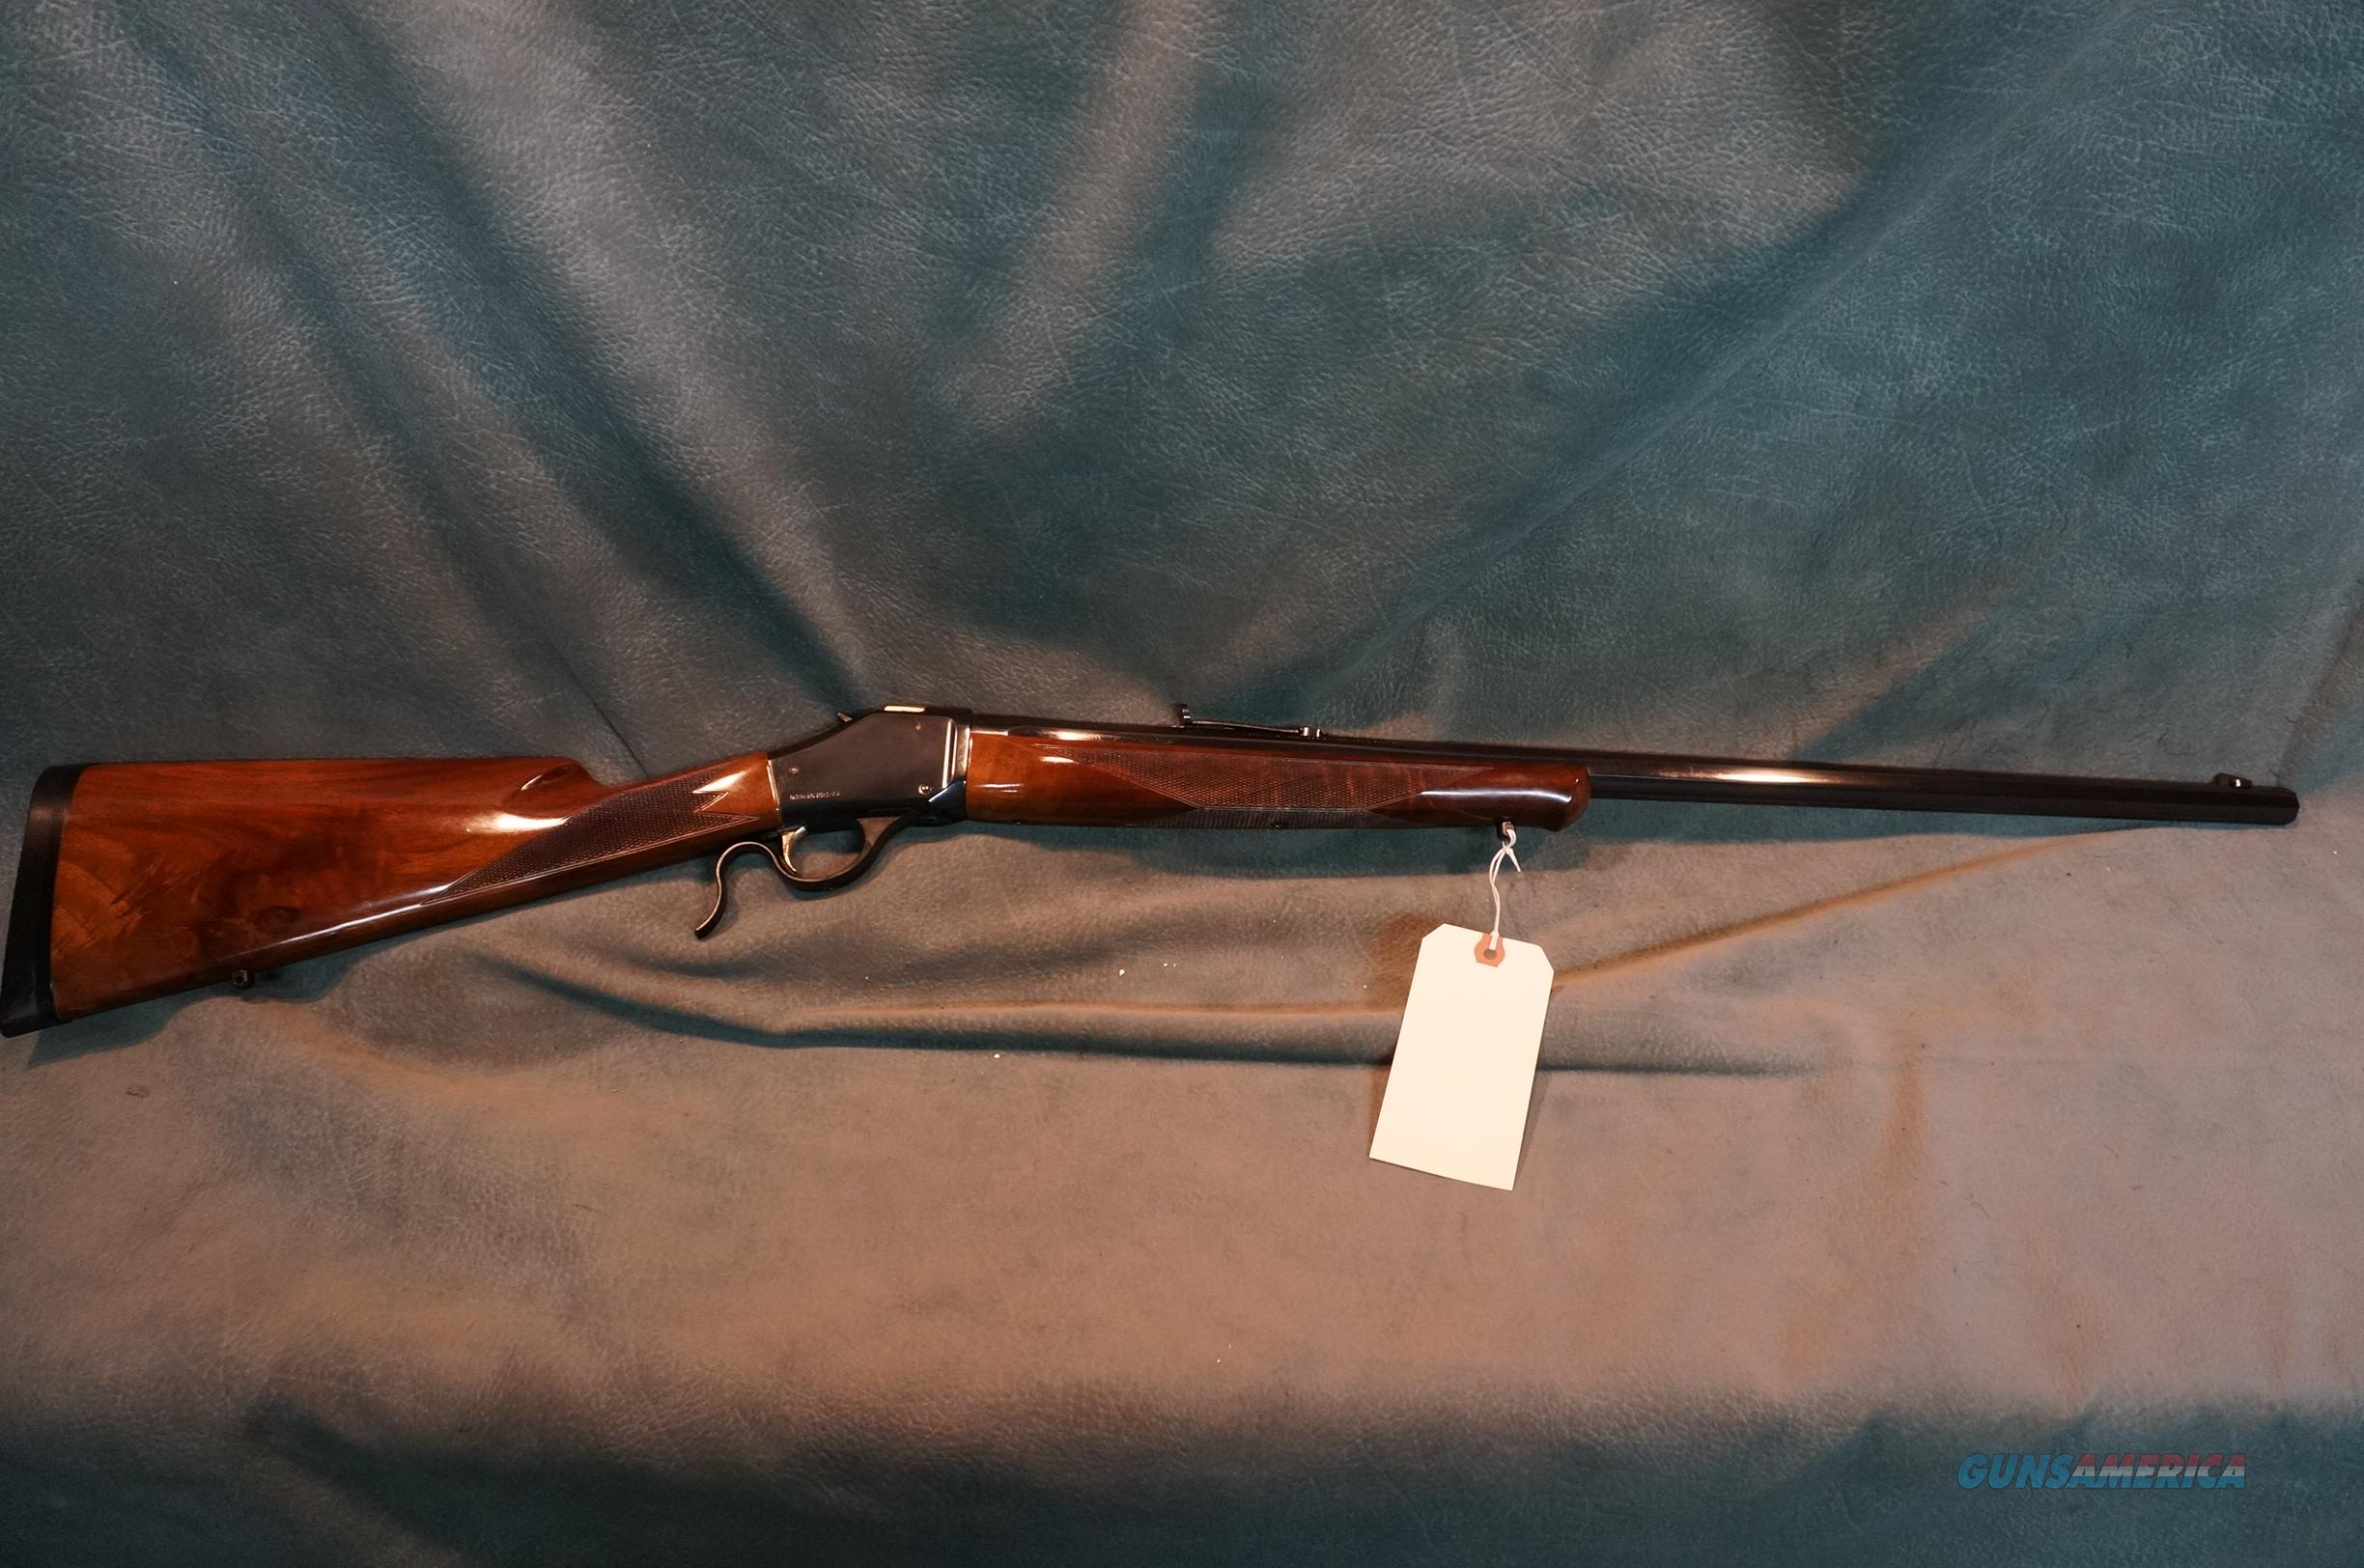 Browning 1885 454 Casull pretty wood  Guns > Rifles > Browning Rifles > Single Shot